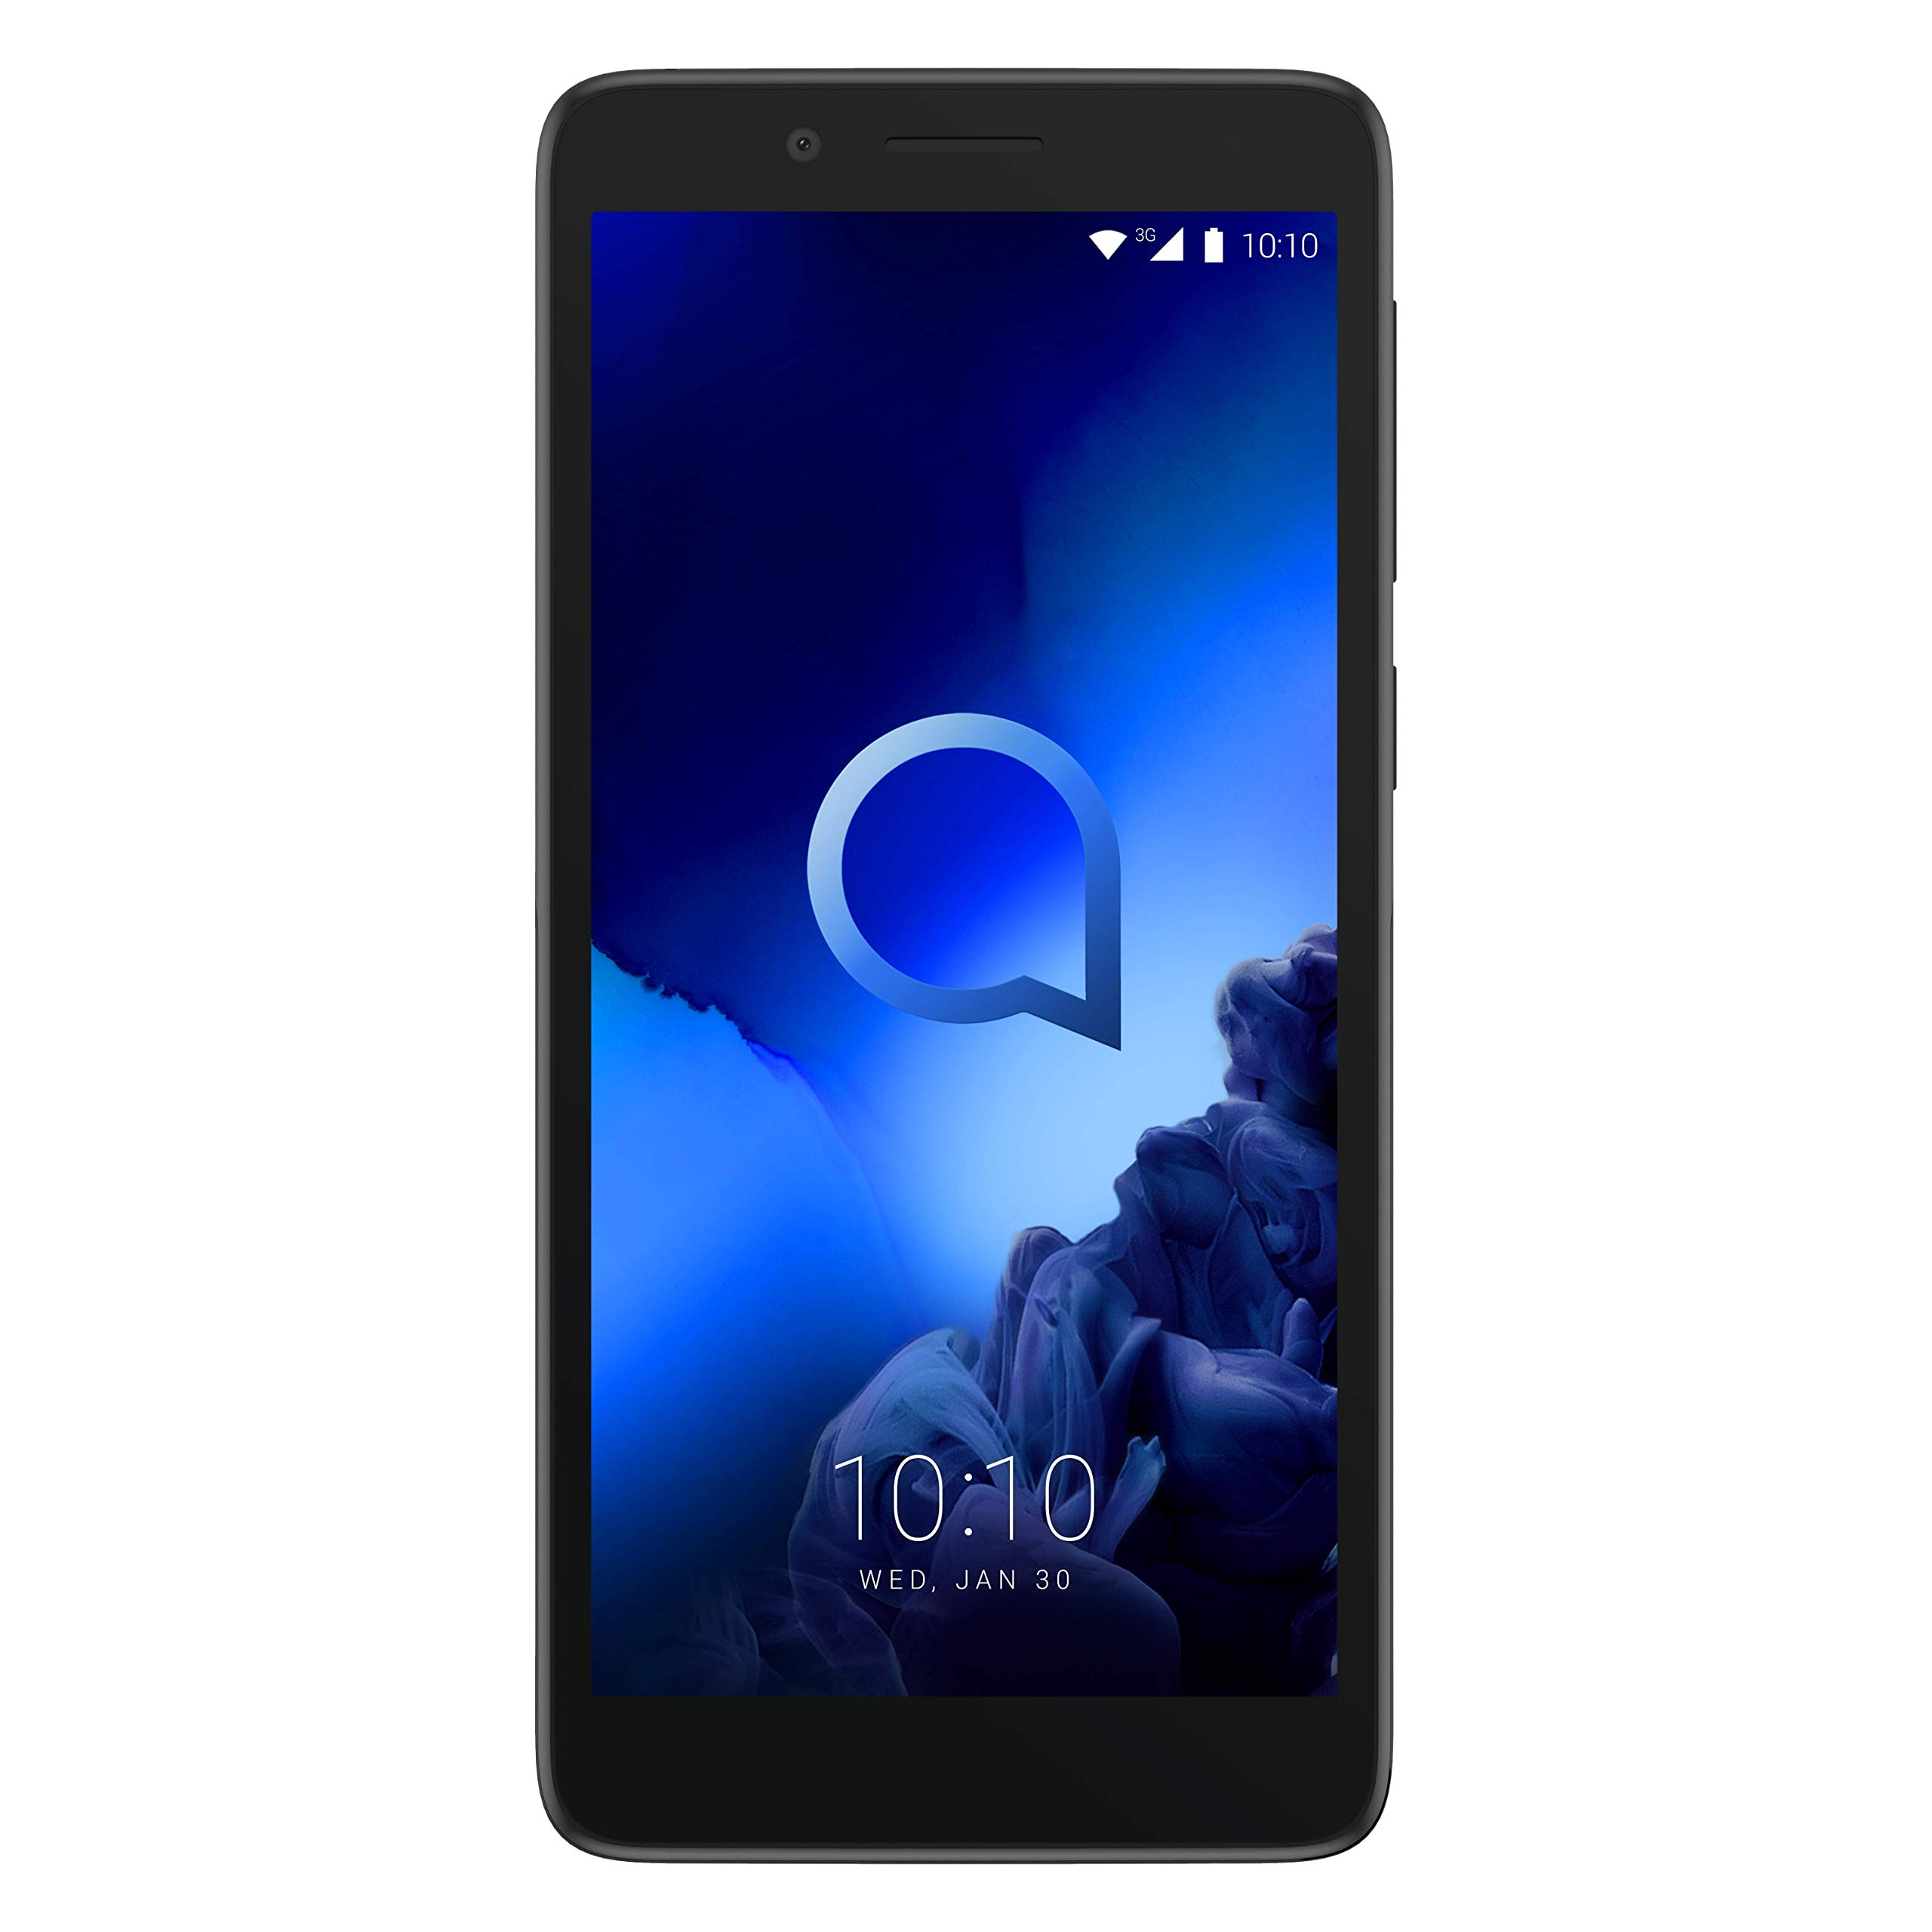 Alcatel 1C 2019 Sim Free Unlocked UK Smartphone 18:9 Display 8GB Dual Sim- Black                Samsung Galaxy A12 SIM Free Android Smartphone 64 GB, Blue (UK Version)                Huawei P Smart (2019) - Smartphone 64GB, 3GB RAM, Dual Sim, Midnight Black                Samsung Smartphone Galaxy S9 (Single Sim) 64GB UK Version - Midnight Black